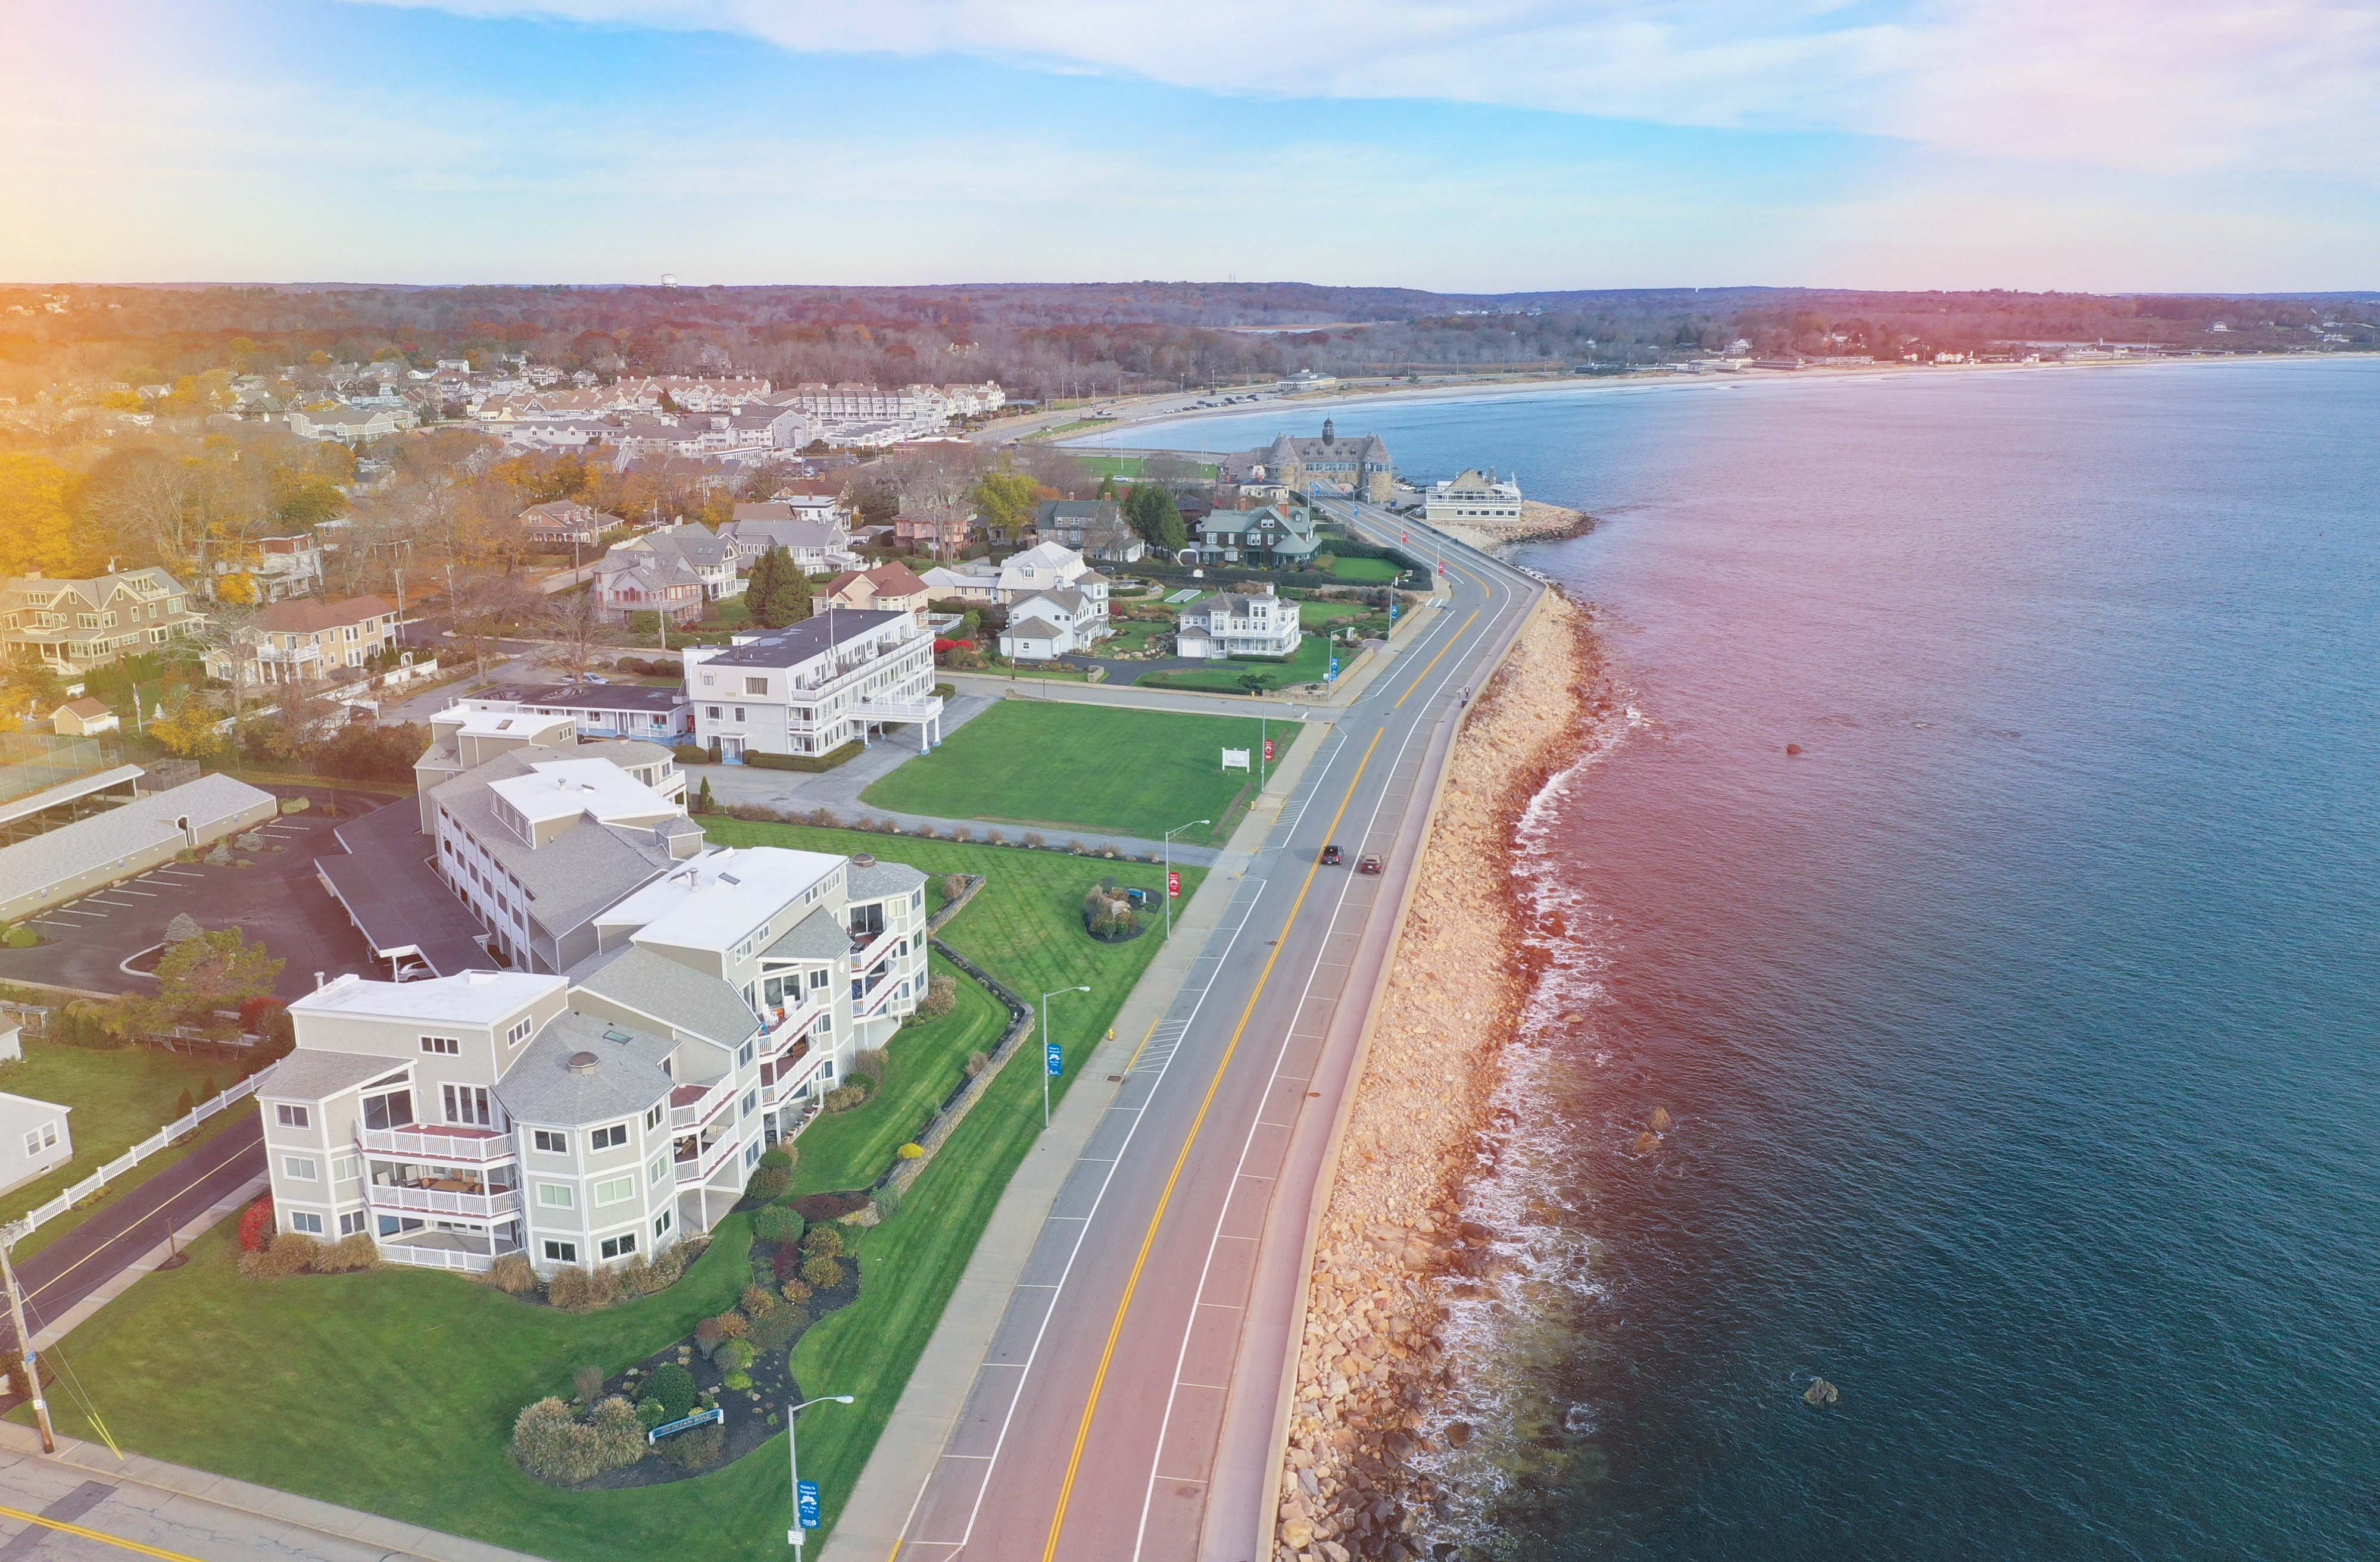 OCEANFRONT CONDO SALE IN NARRAGANSETT MARKS THE HIGHEST CONDO SALE IN TOWN SINCE 2017, WITH LILA DELMAN ON BOTH ENDS OF THE TRANSACTION*